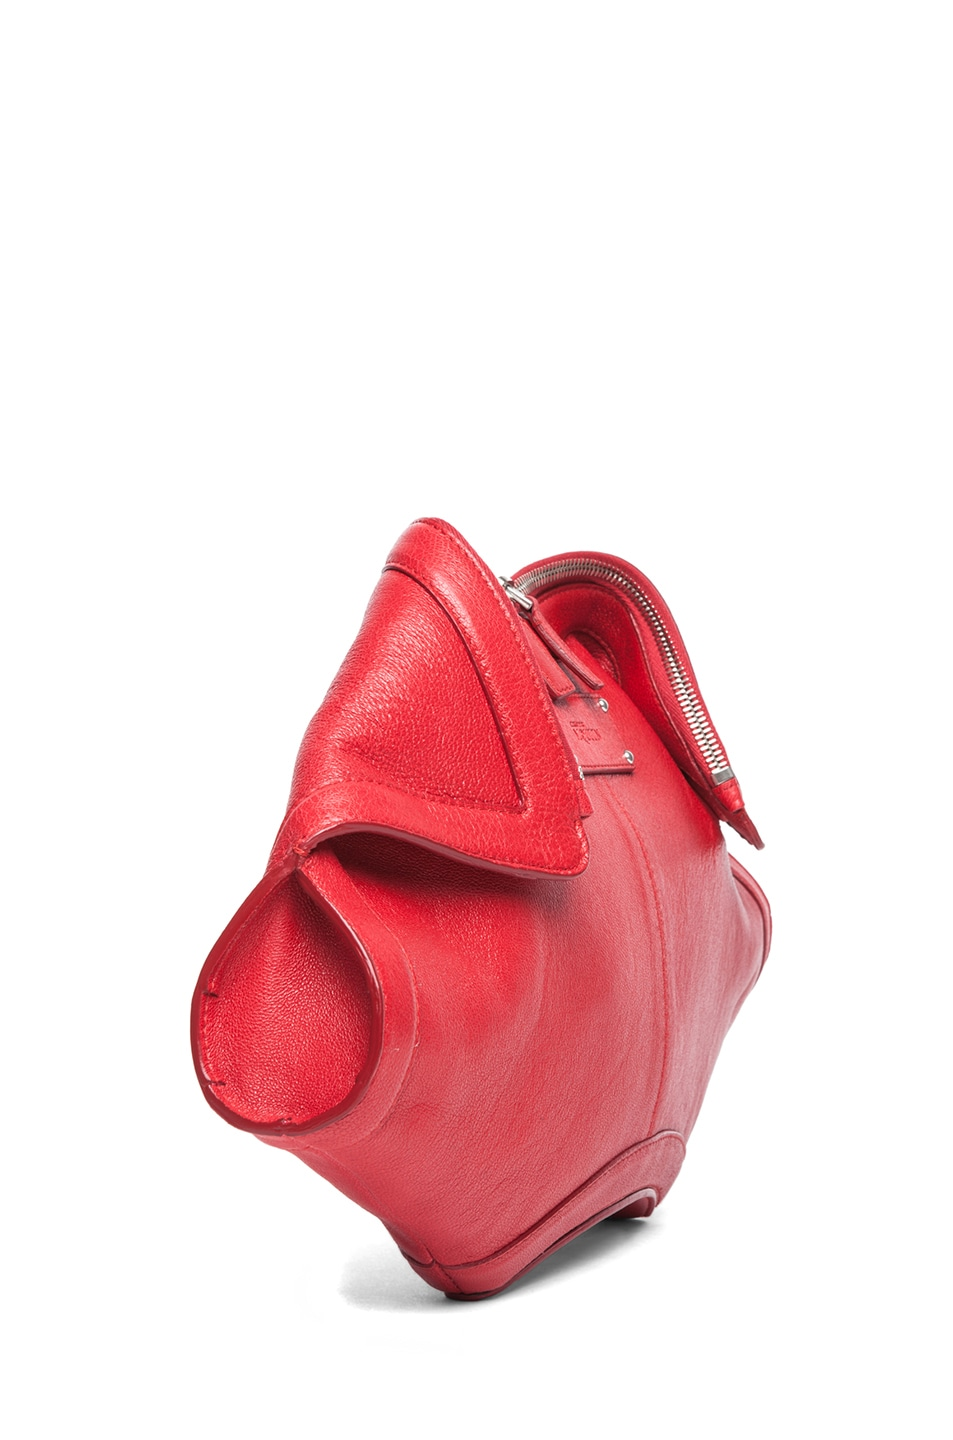 Image 3 of Alexander McQueen De Manta Clutch in Shiny Red